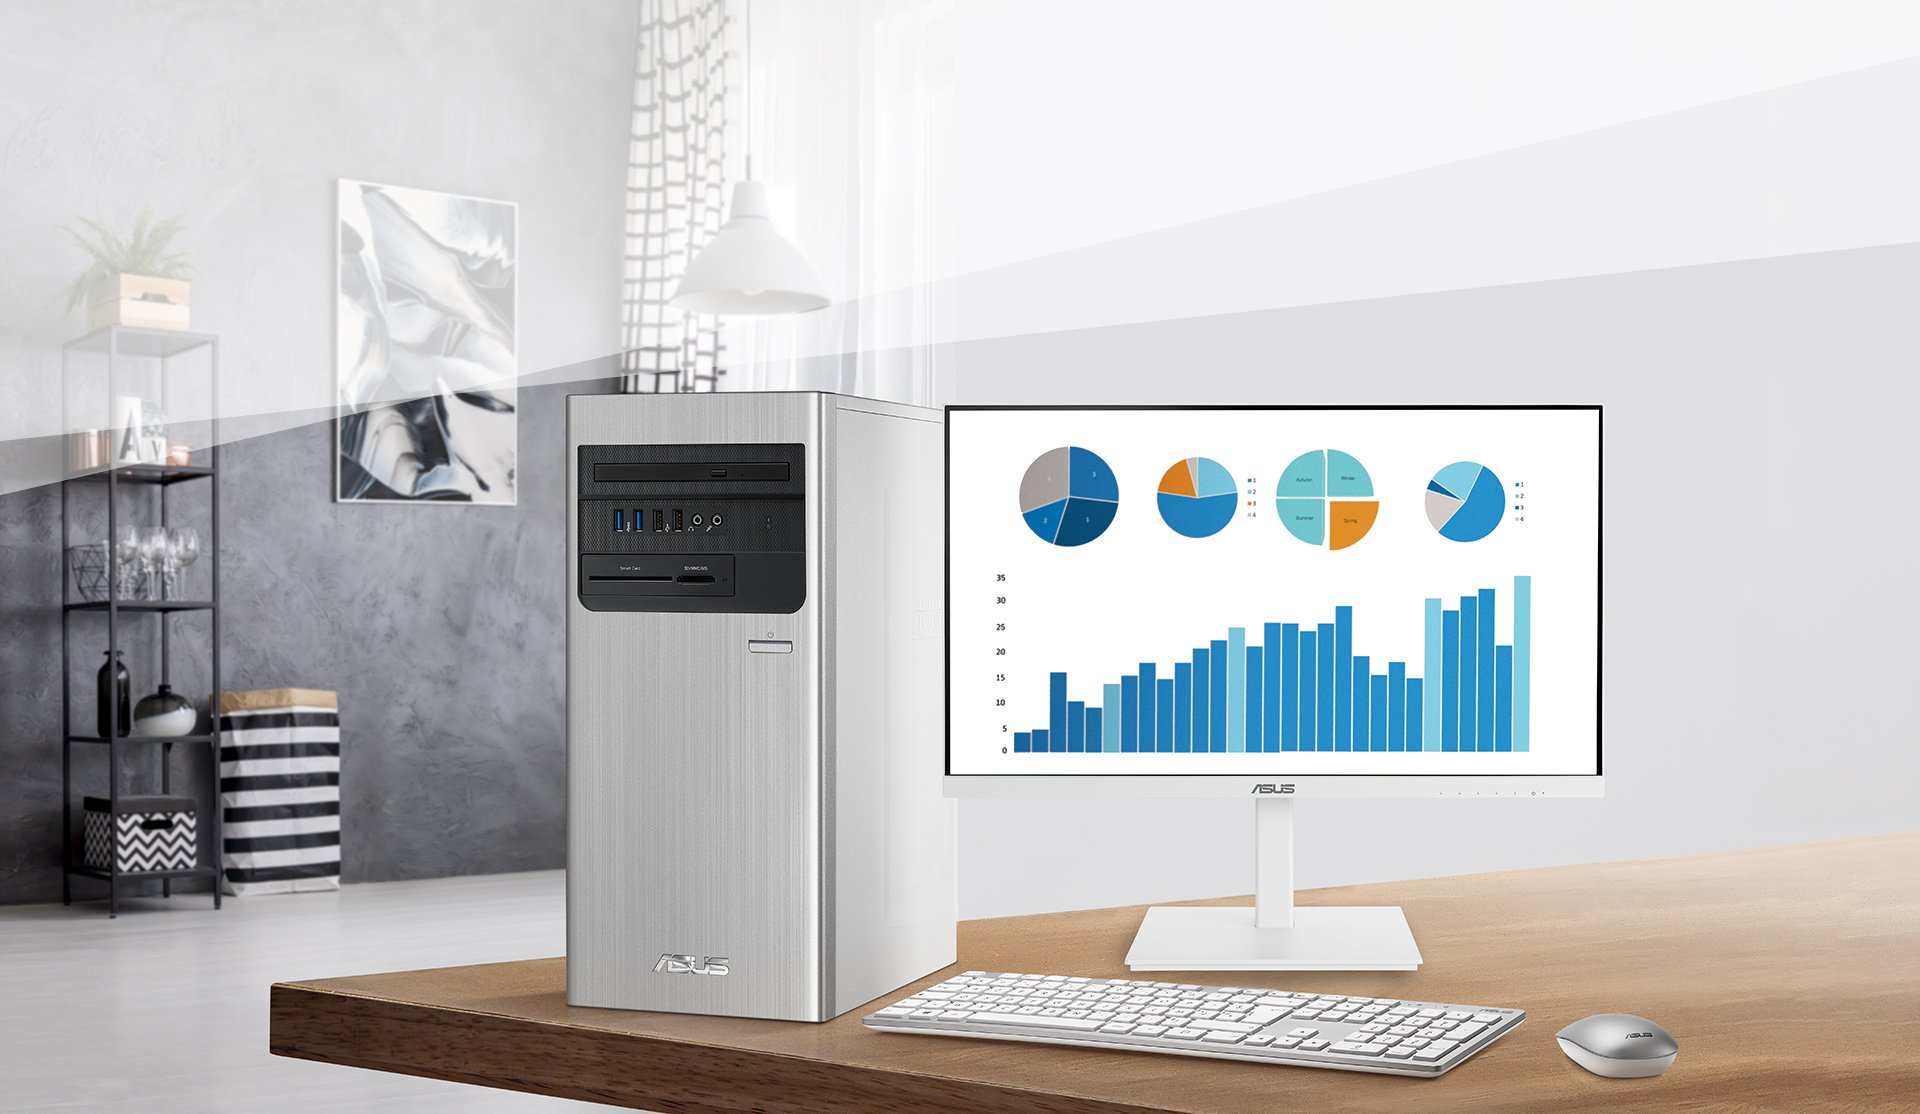 BE24EQSB is a 23.8-inch Full HD monitor that features an integrated Full HD (2MP) webcam, microphone array and stereo speakers for video conferencing and live-streaming.